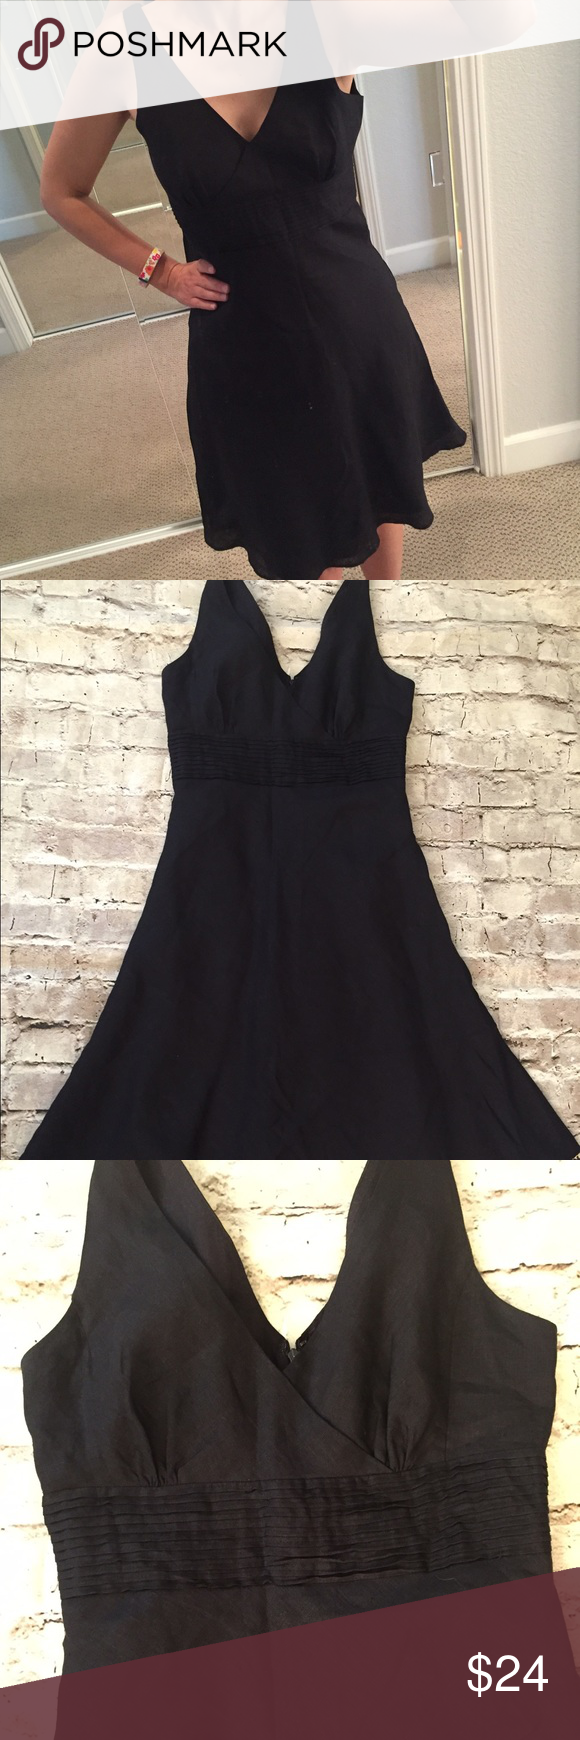 J. Crew linen dress Black, fully lined dress with back zipper. This dress was one of my favorites but it feels a bit too tight on me and I'm looking for a bigger size and selling mine. J. Crew Dresses